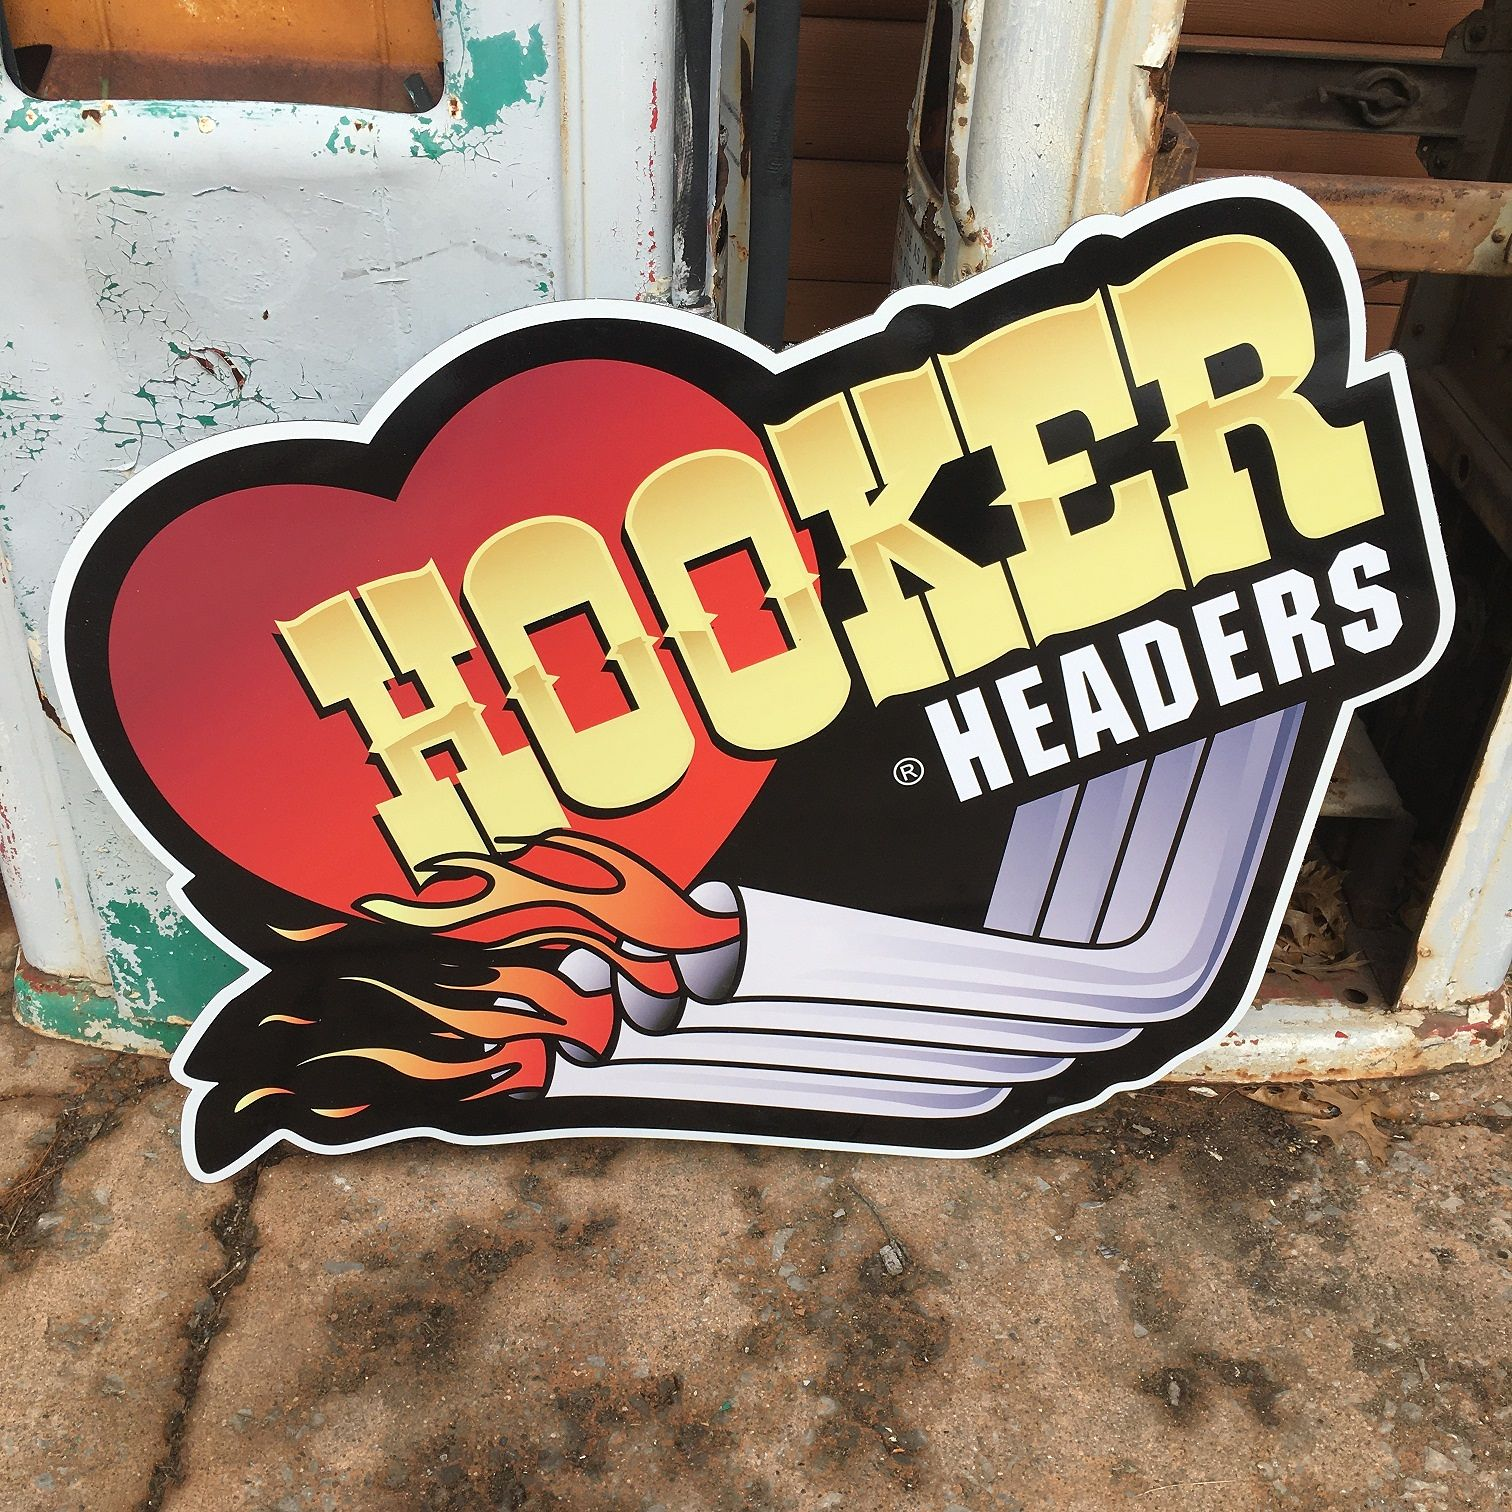 I Love My Hooker Headers Holley Metal Tin Sign Vintage Style Garage Man Cave New